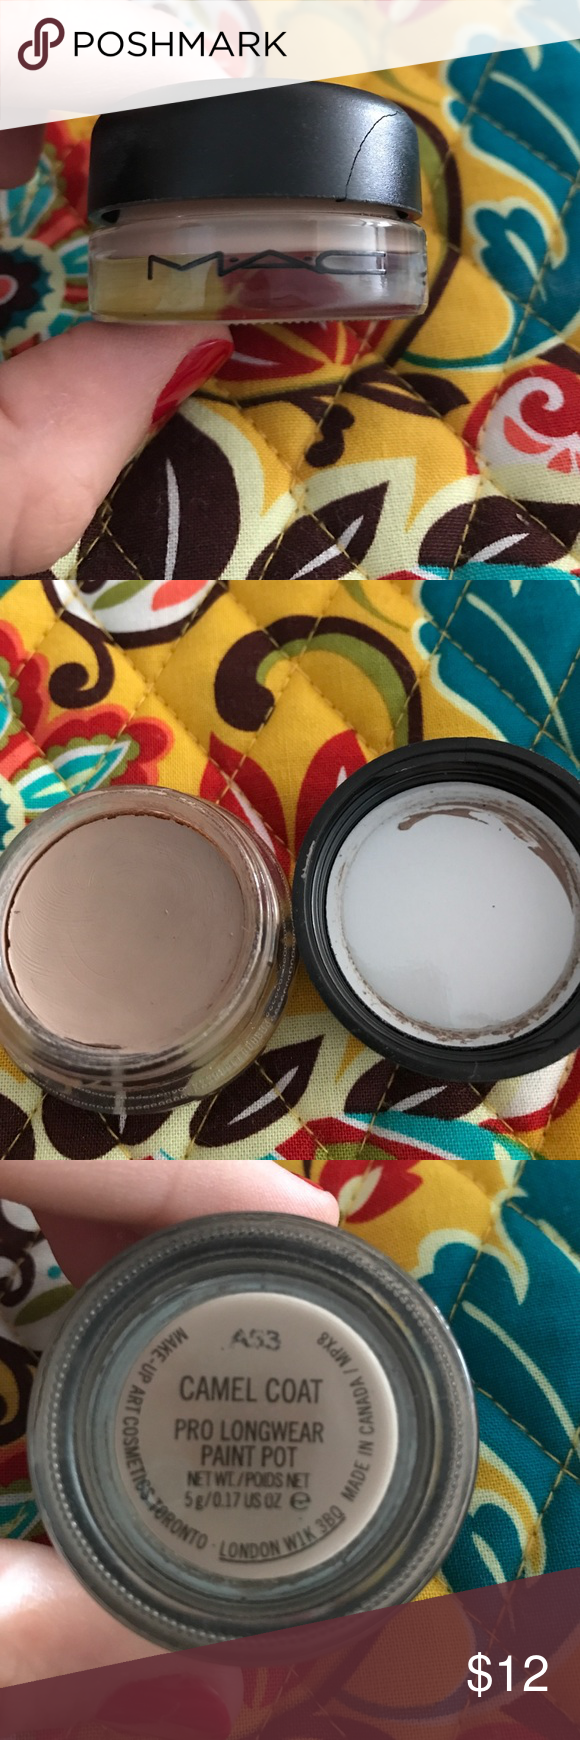 MAC pro longwear paint pot- Camel Coat MAC pro longwear paint pot....color- Camel Coat...may have been used once...great condition except for a small crack on the lid which can be seen in the cover picture...5g MAC Cosmetics Makeup Eyeshadow